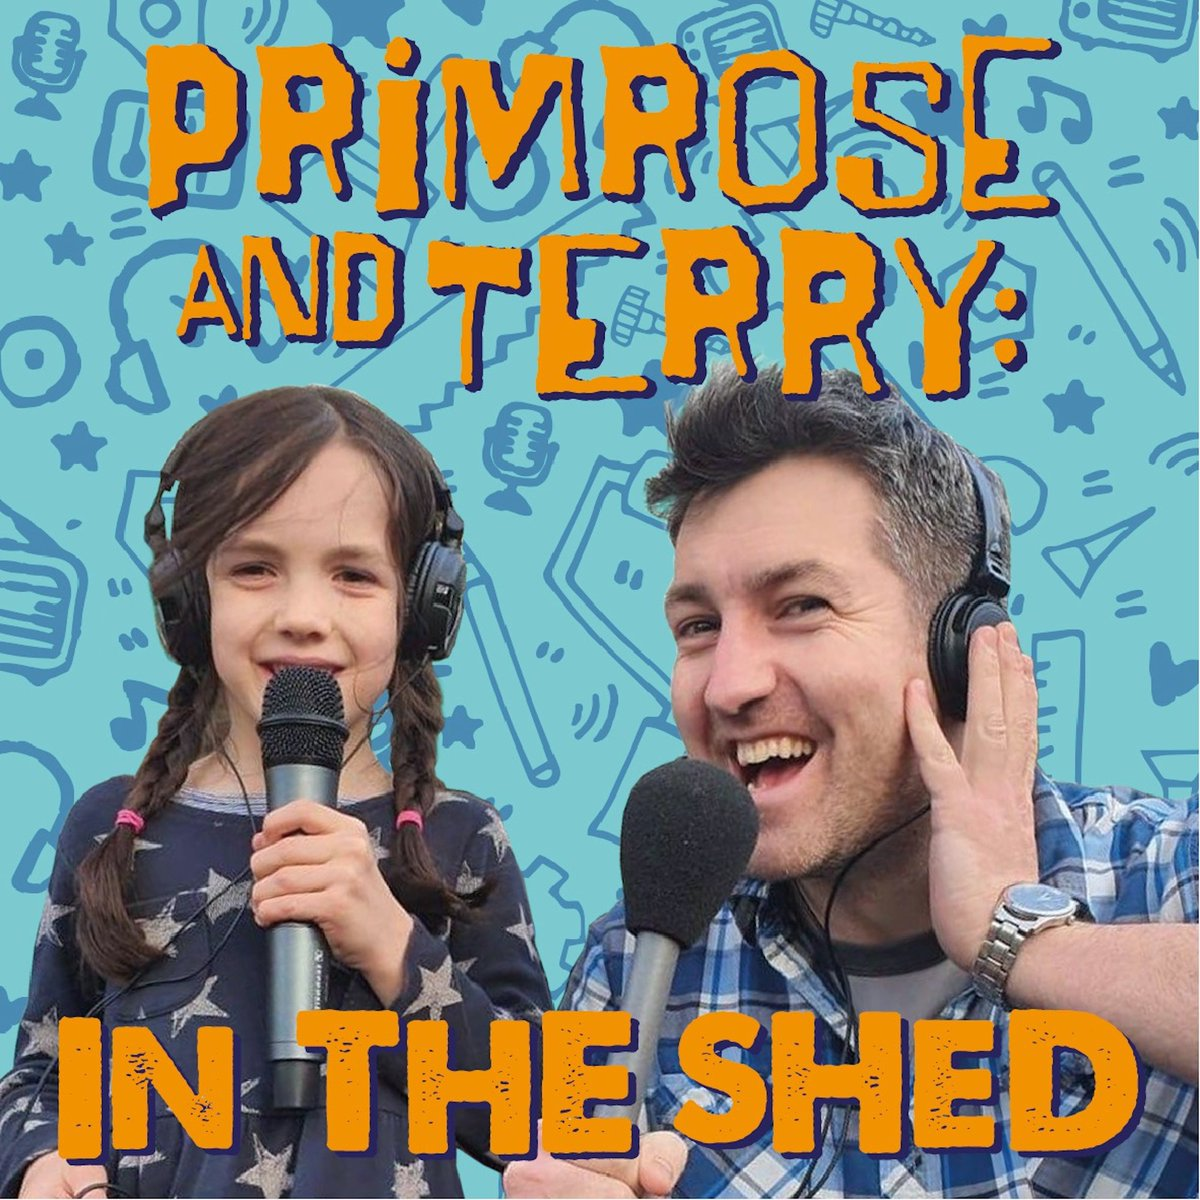 Primrose is the cheerful 7y/o daughter of @terryleeradio  who has been creating fun #Audio magic for listeners with her #homebasedlearning podcast project, 'Primrose & Terry in the Shed' ➡️ https://t.co/32QJqx1zvZ   🎧 Give it a listen!   #WeAreTogether #homeschooling #StayHome https://t.co/JYNdzykfLz